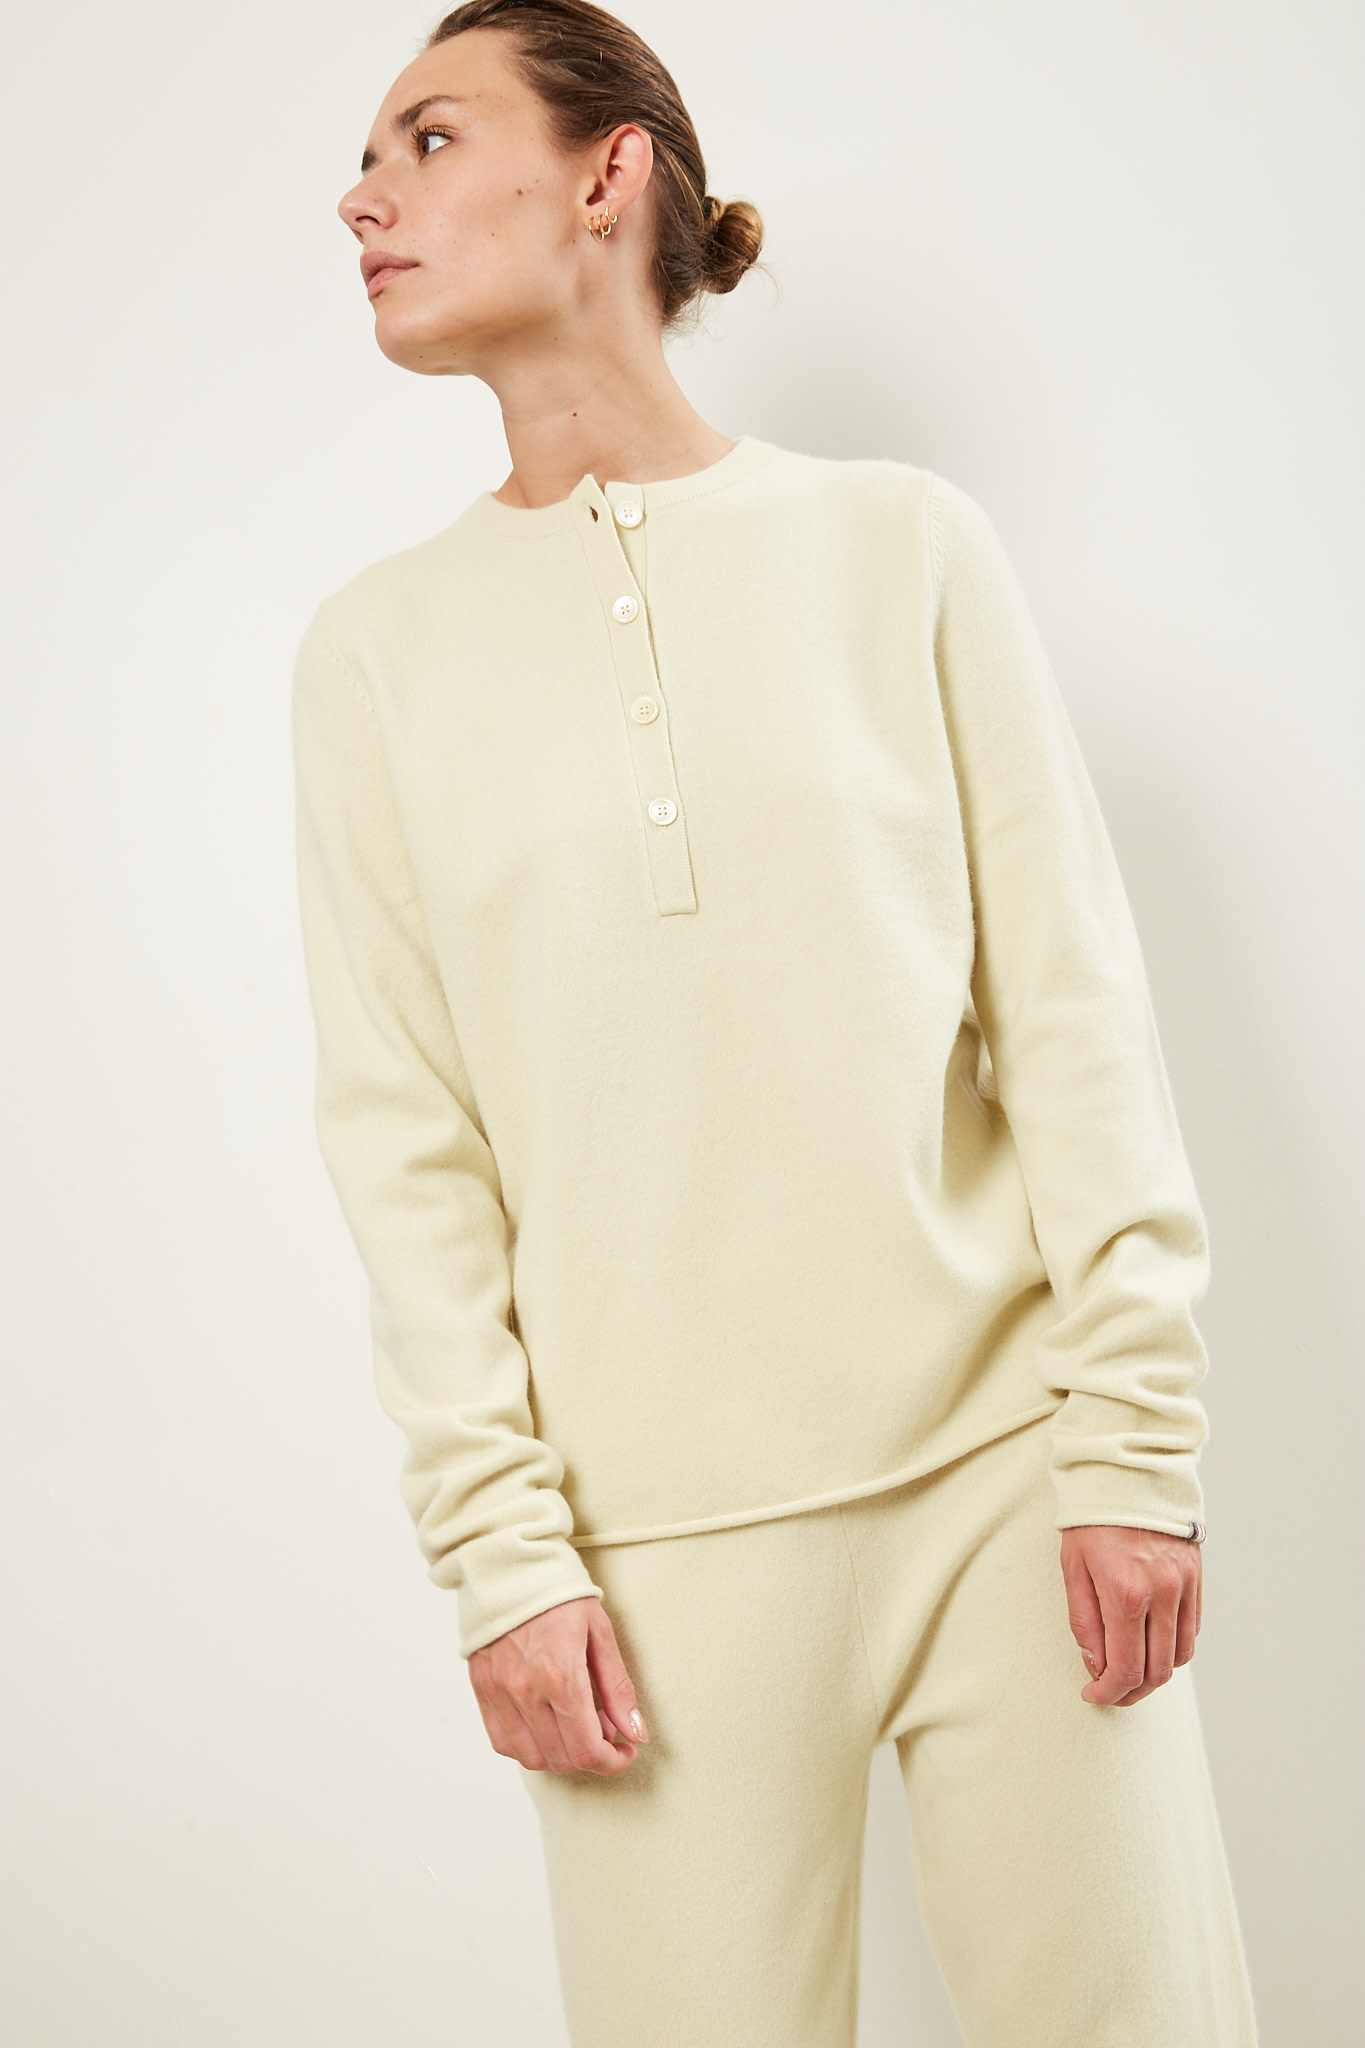 extreme cashmere - Be loved classic fit sweater